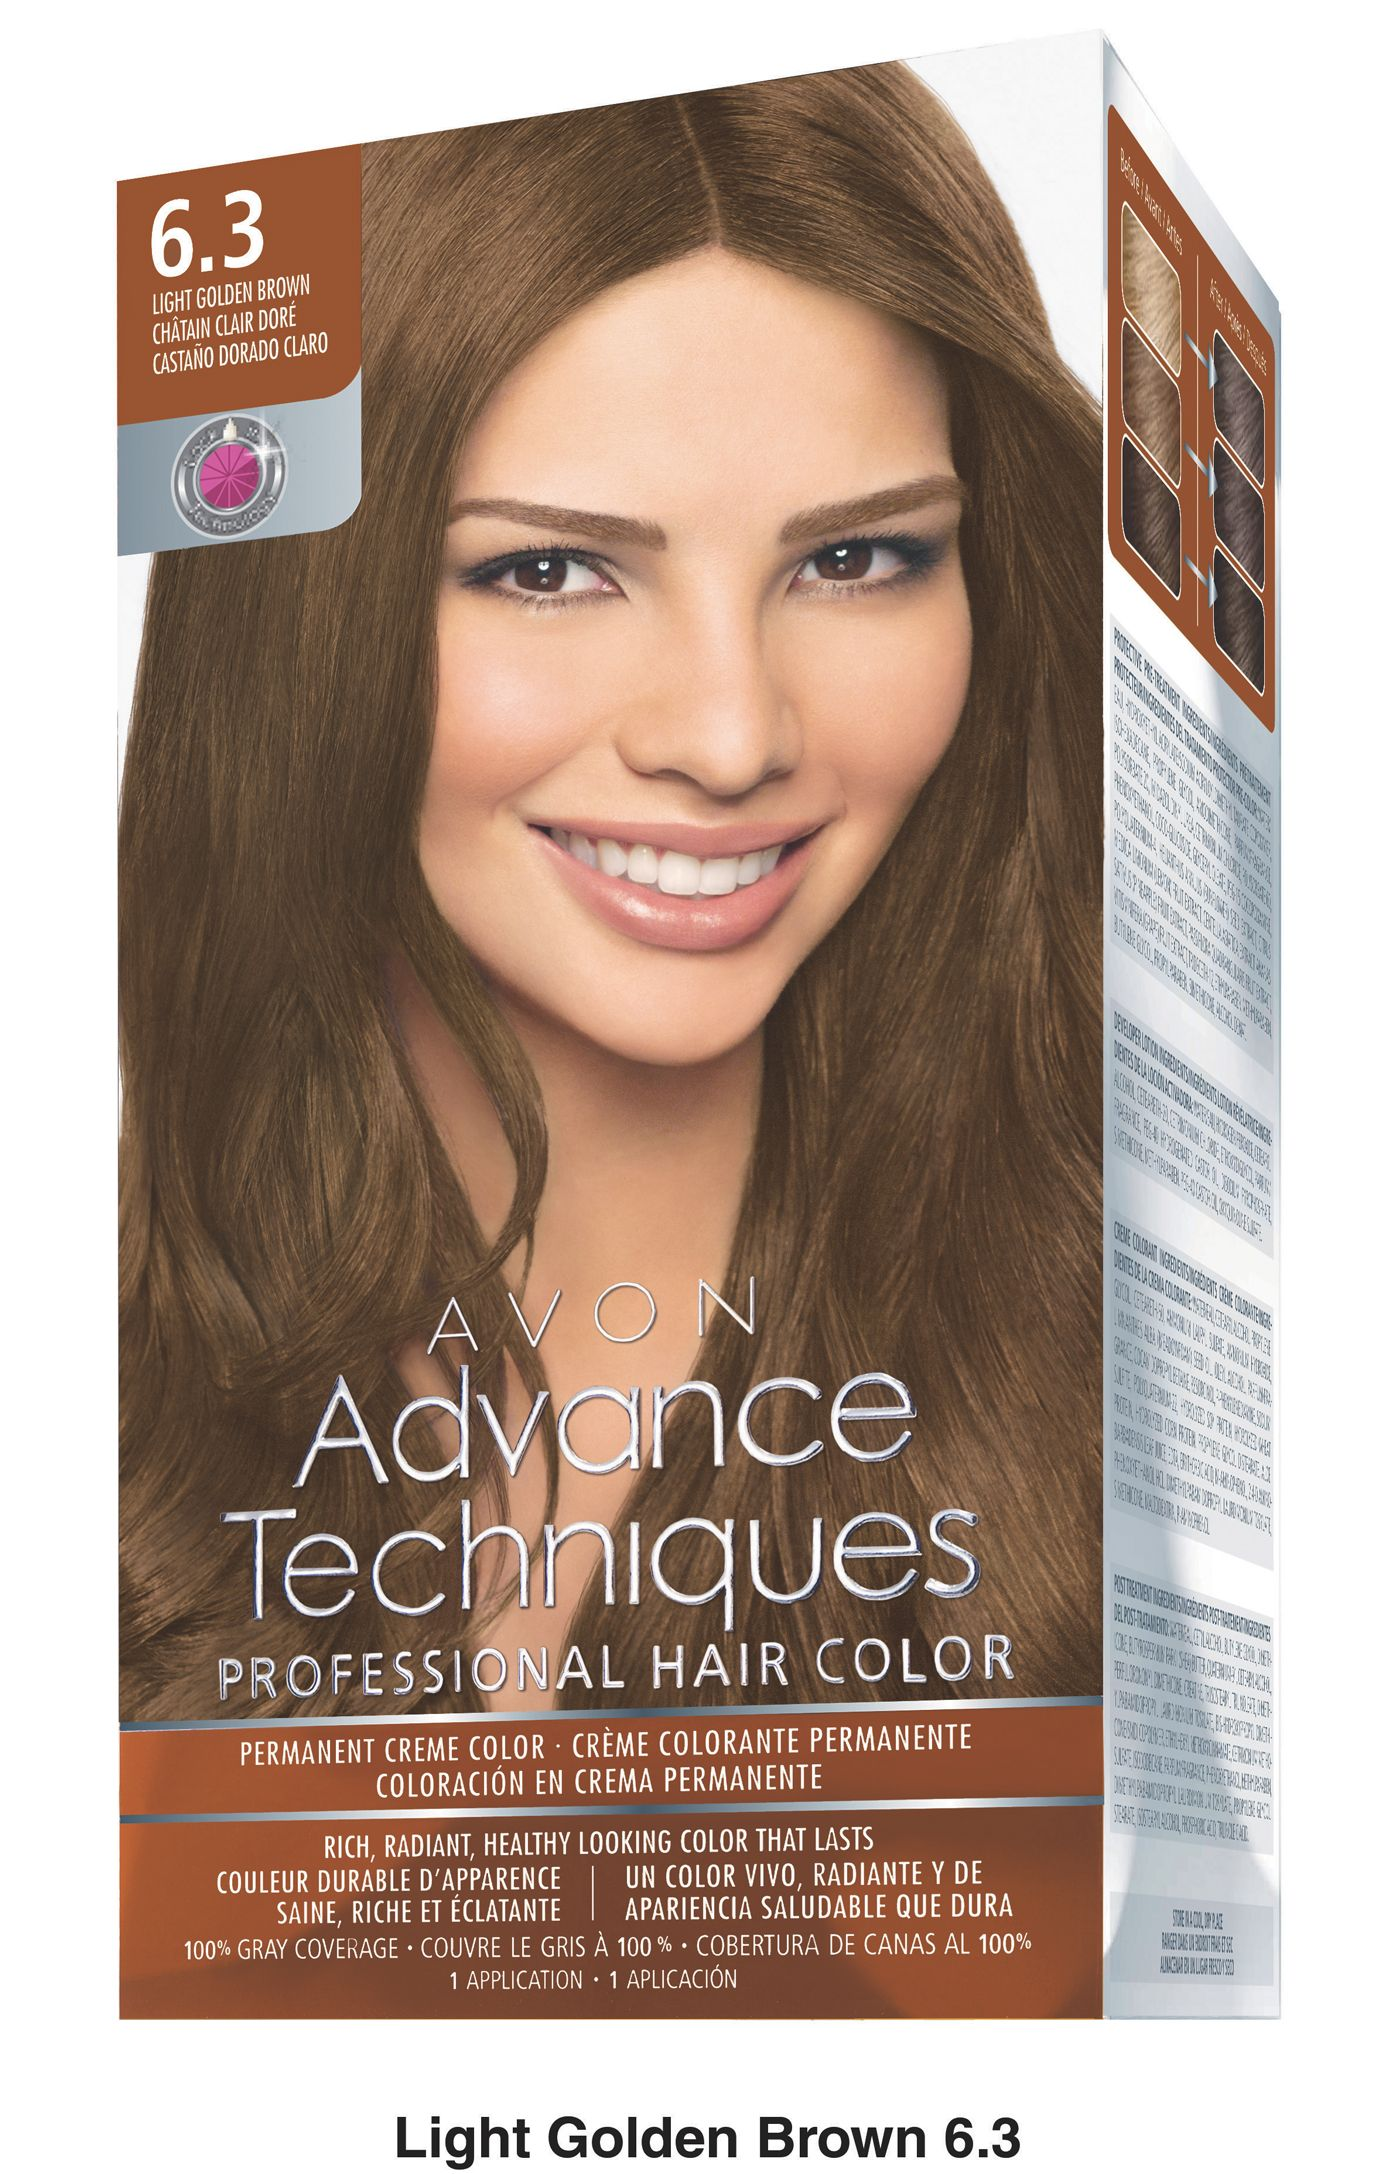 Avon Launches Hair Color in the U.S.